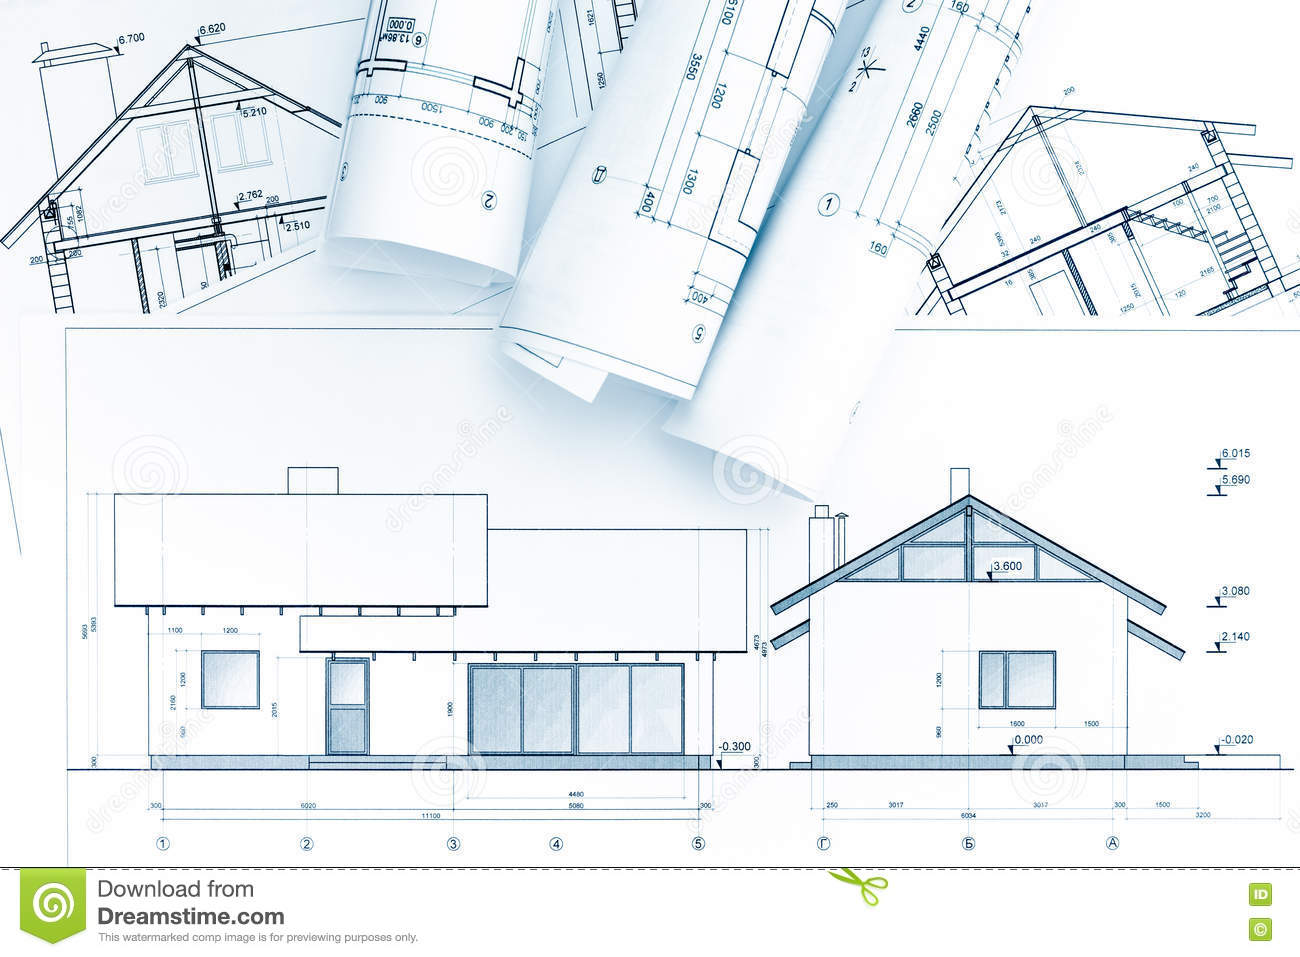 Architectural blueprints and house plan stock image image of download architectural blueprints and house plan stock image image of diagram planning 72086751 malvernweather Images